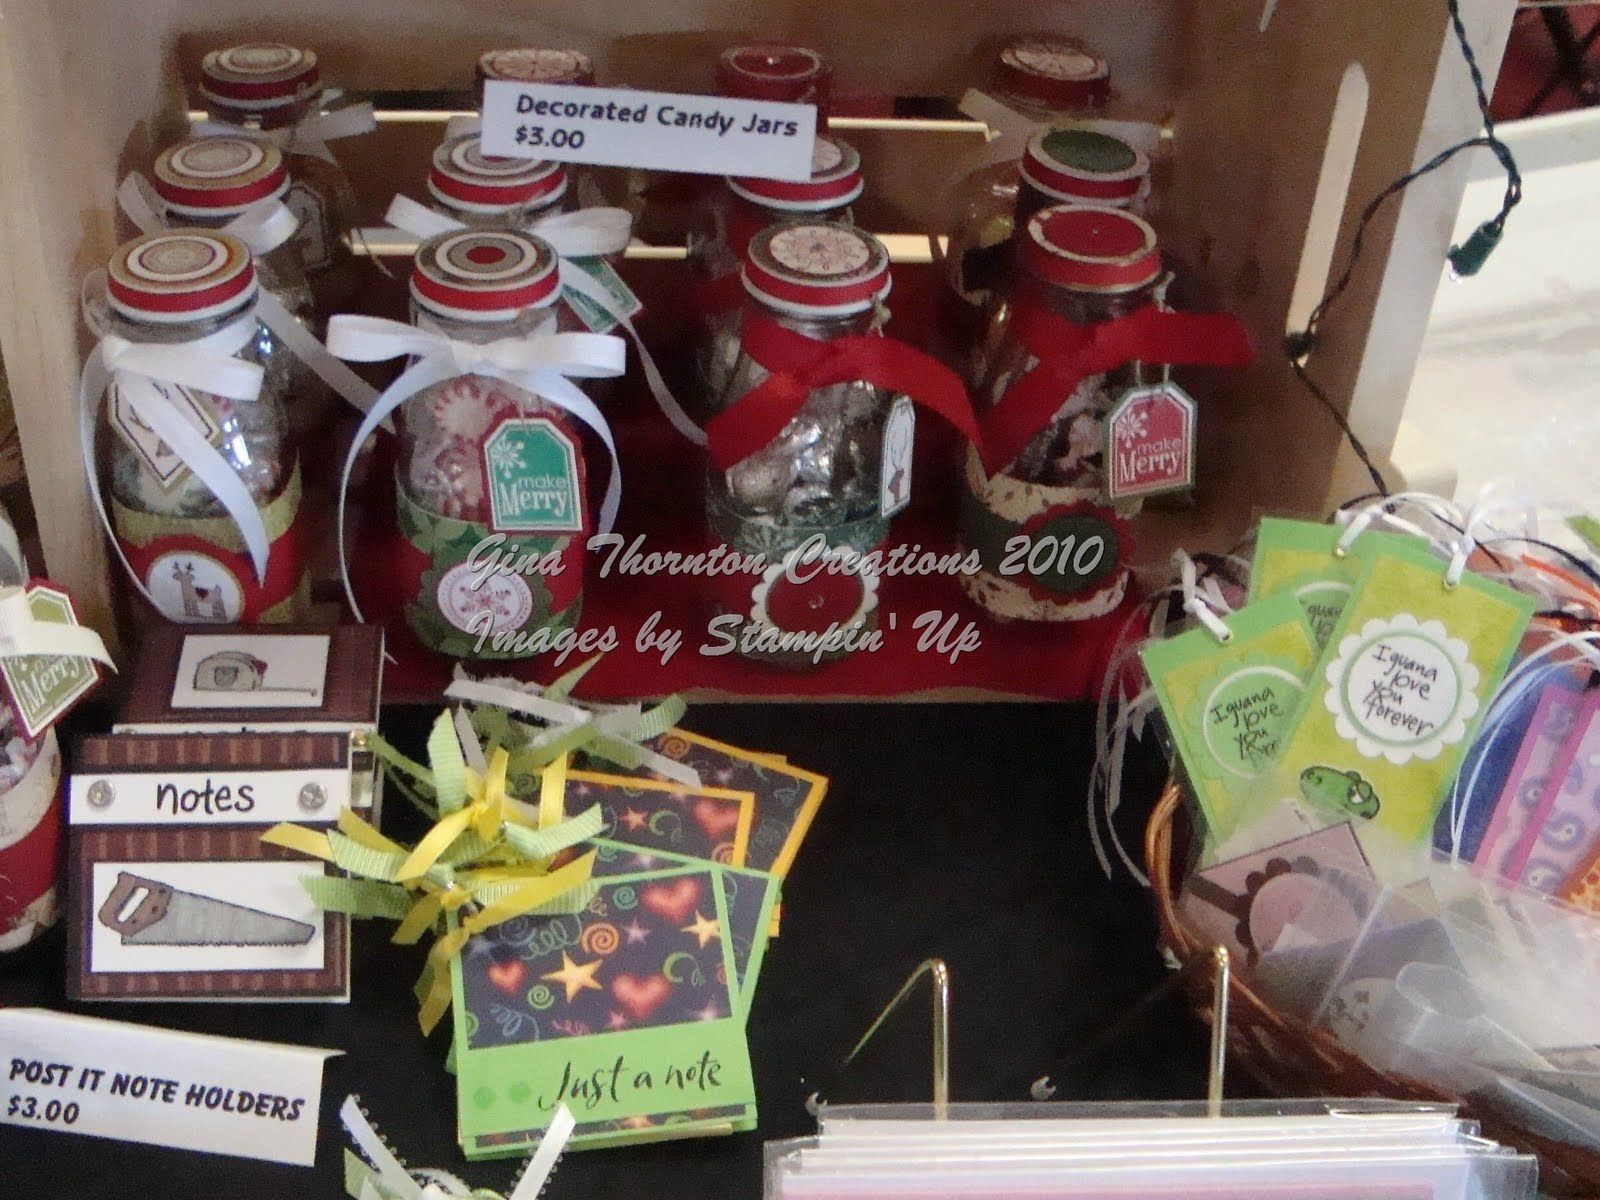 Christmas Crafts To Sell At Craft Fairs.Christmas Crafts To Sell At Craft Fairs Another Top Seller